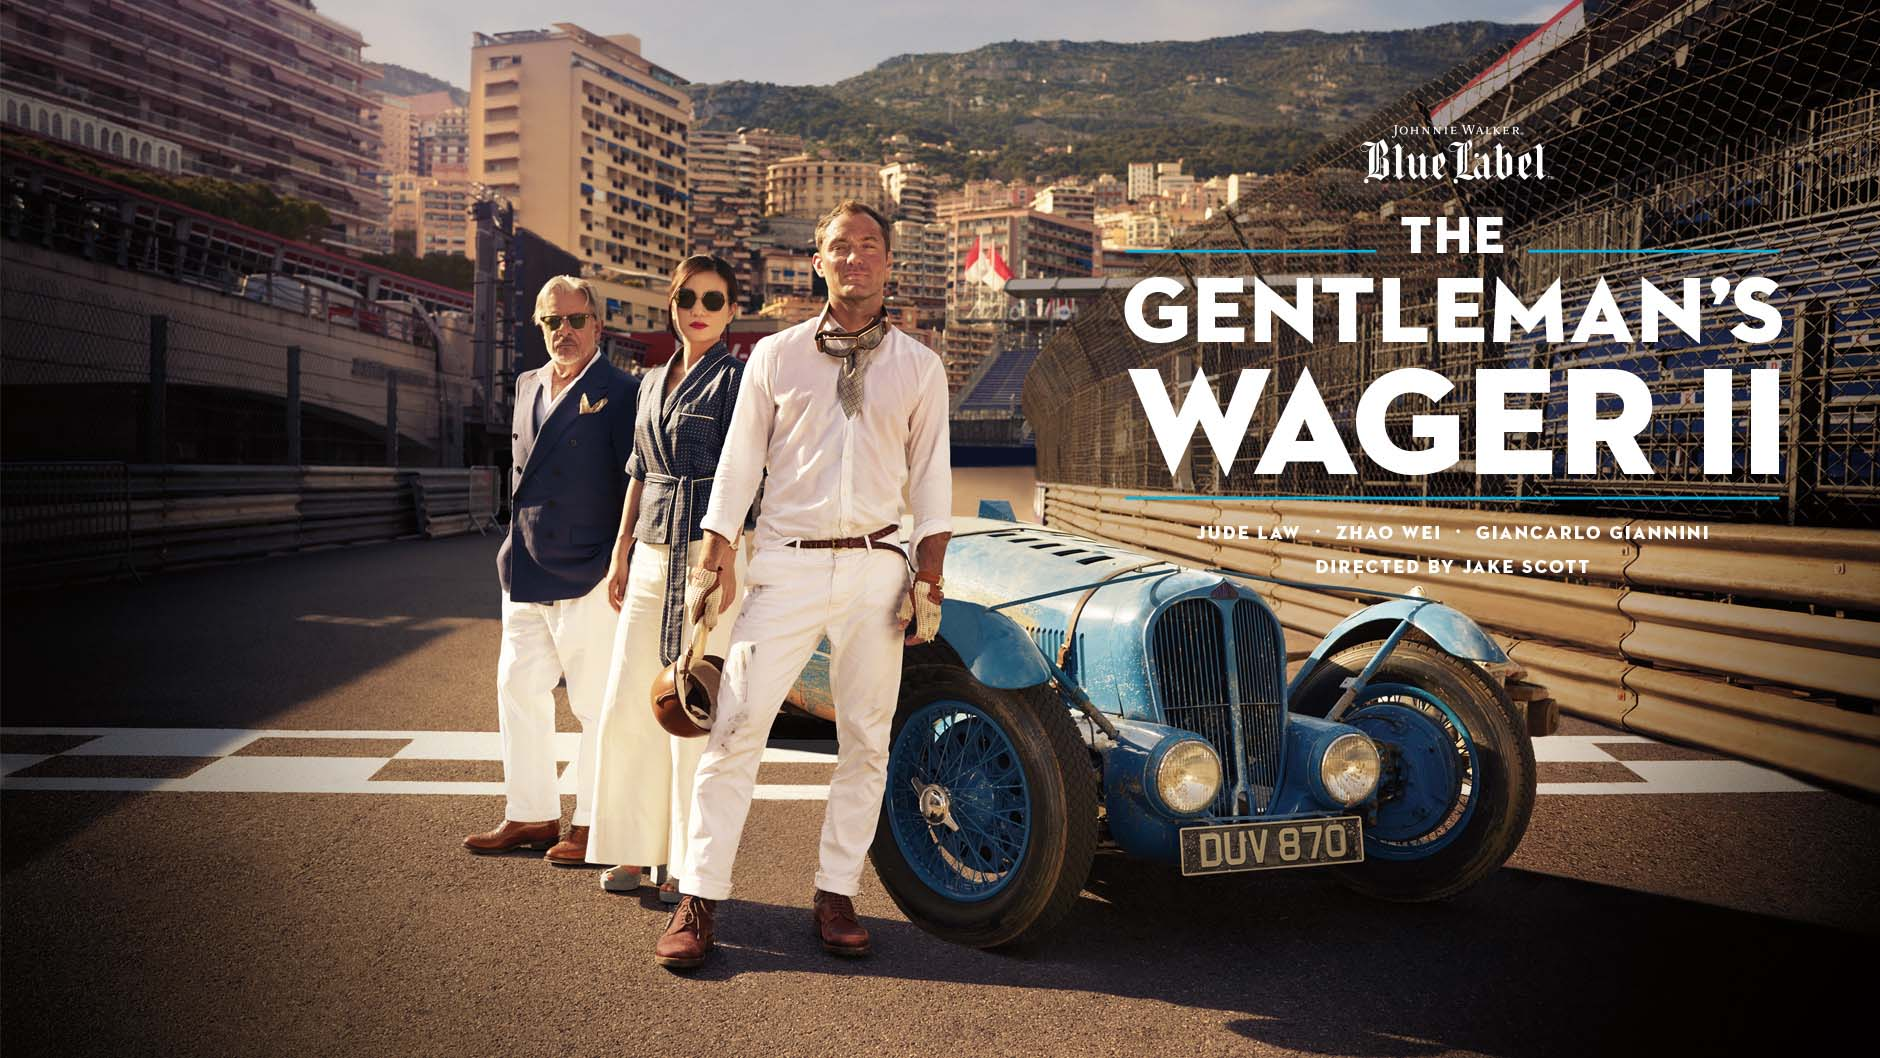 johnnie walker gentlemans wager image